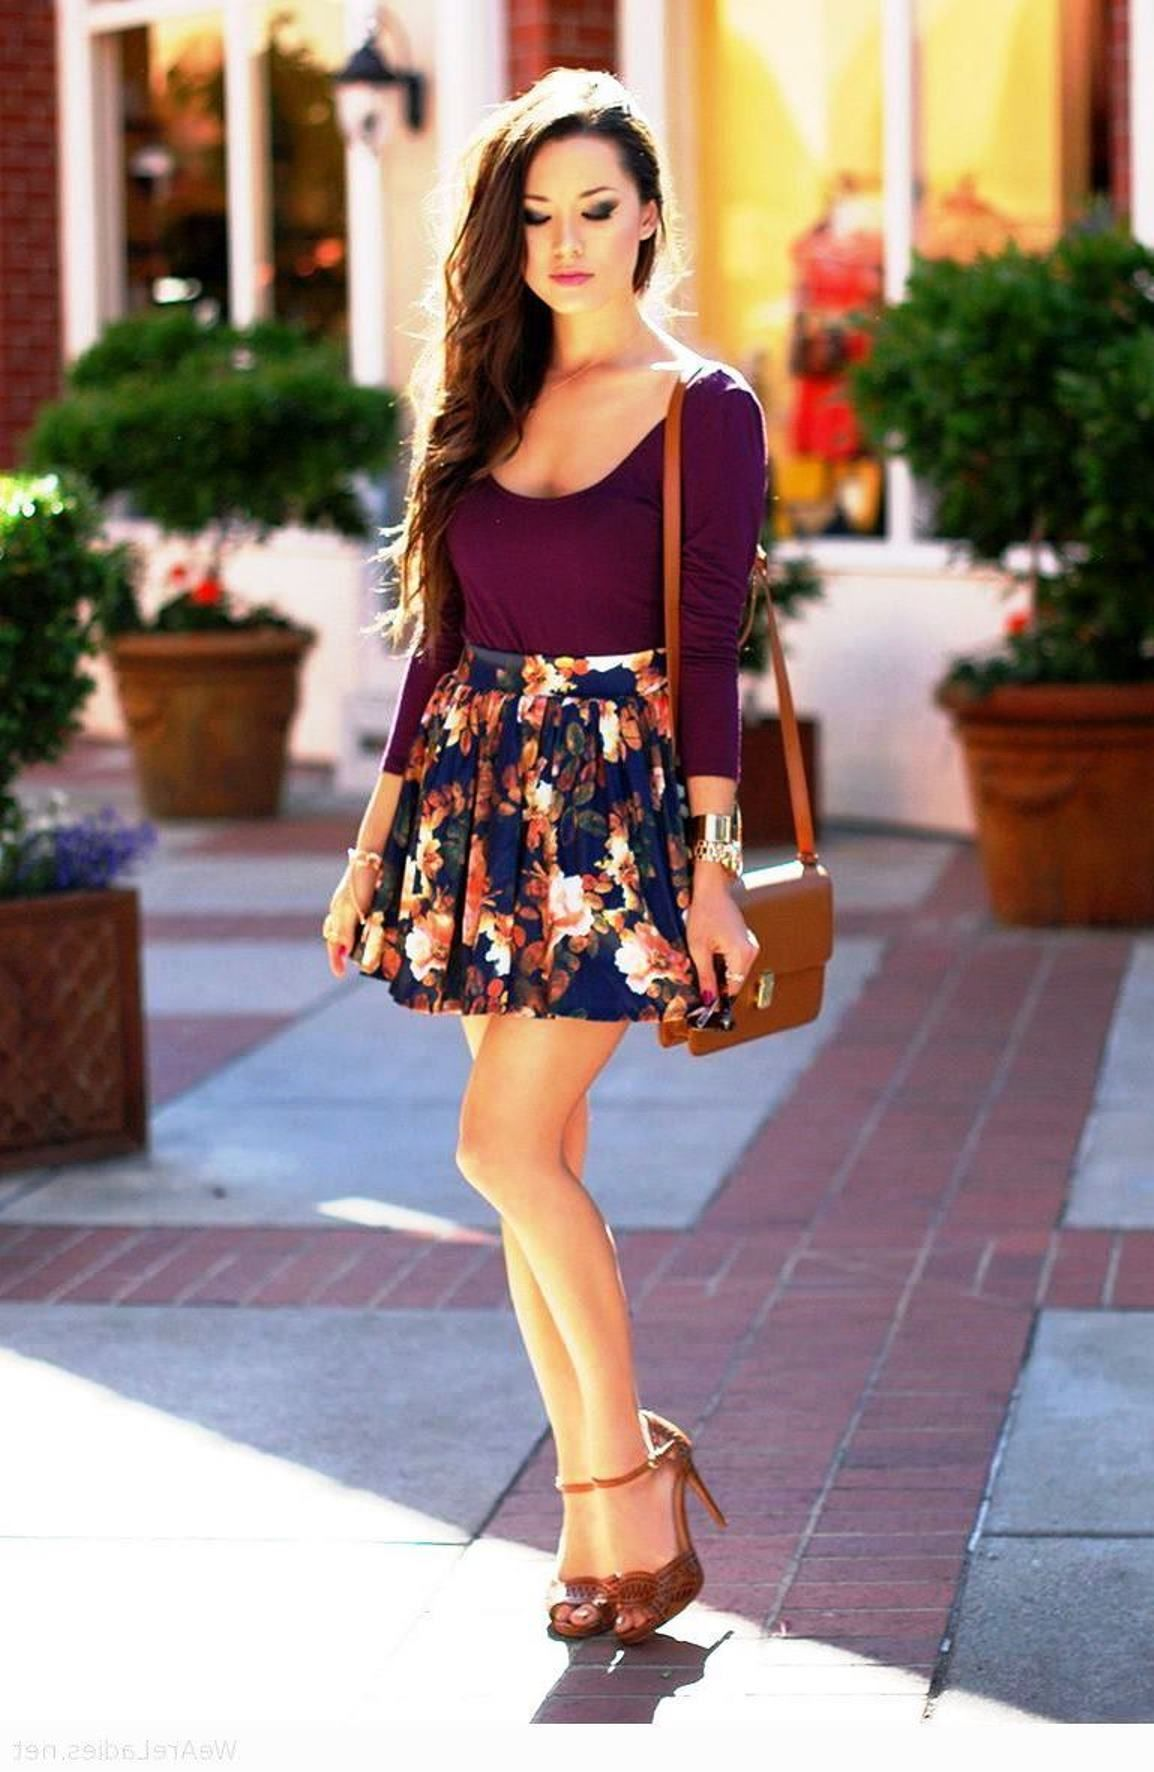 Tumblr fashion outfits spring images galleries with a bite Pretty girl fashion style tumblr